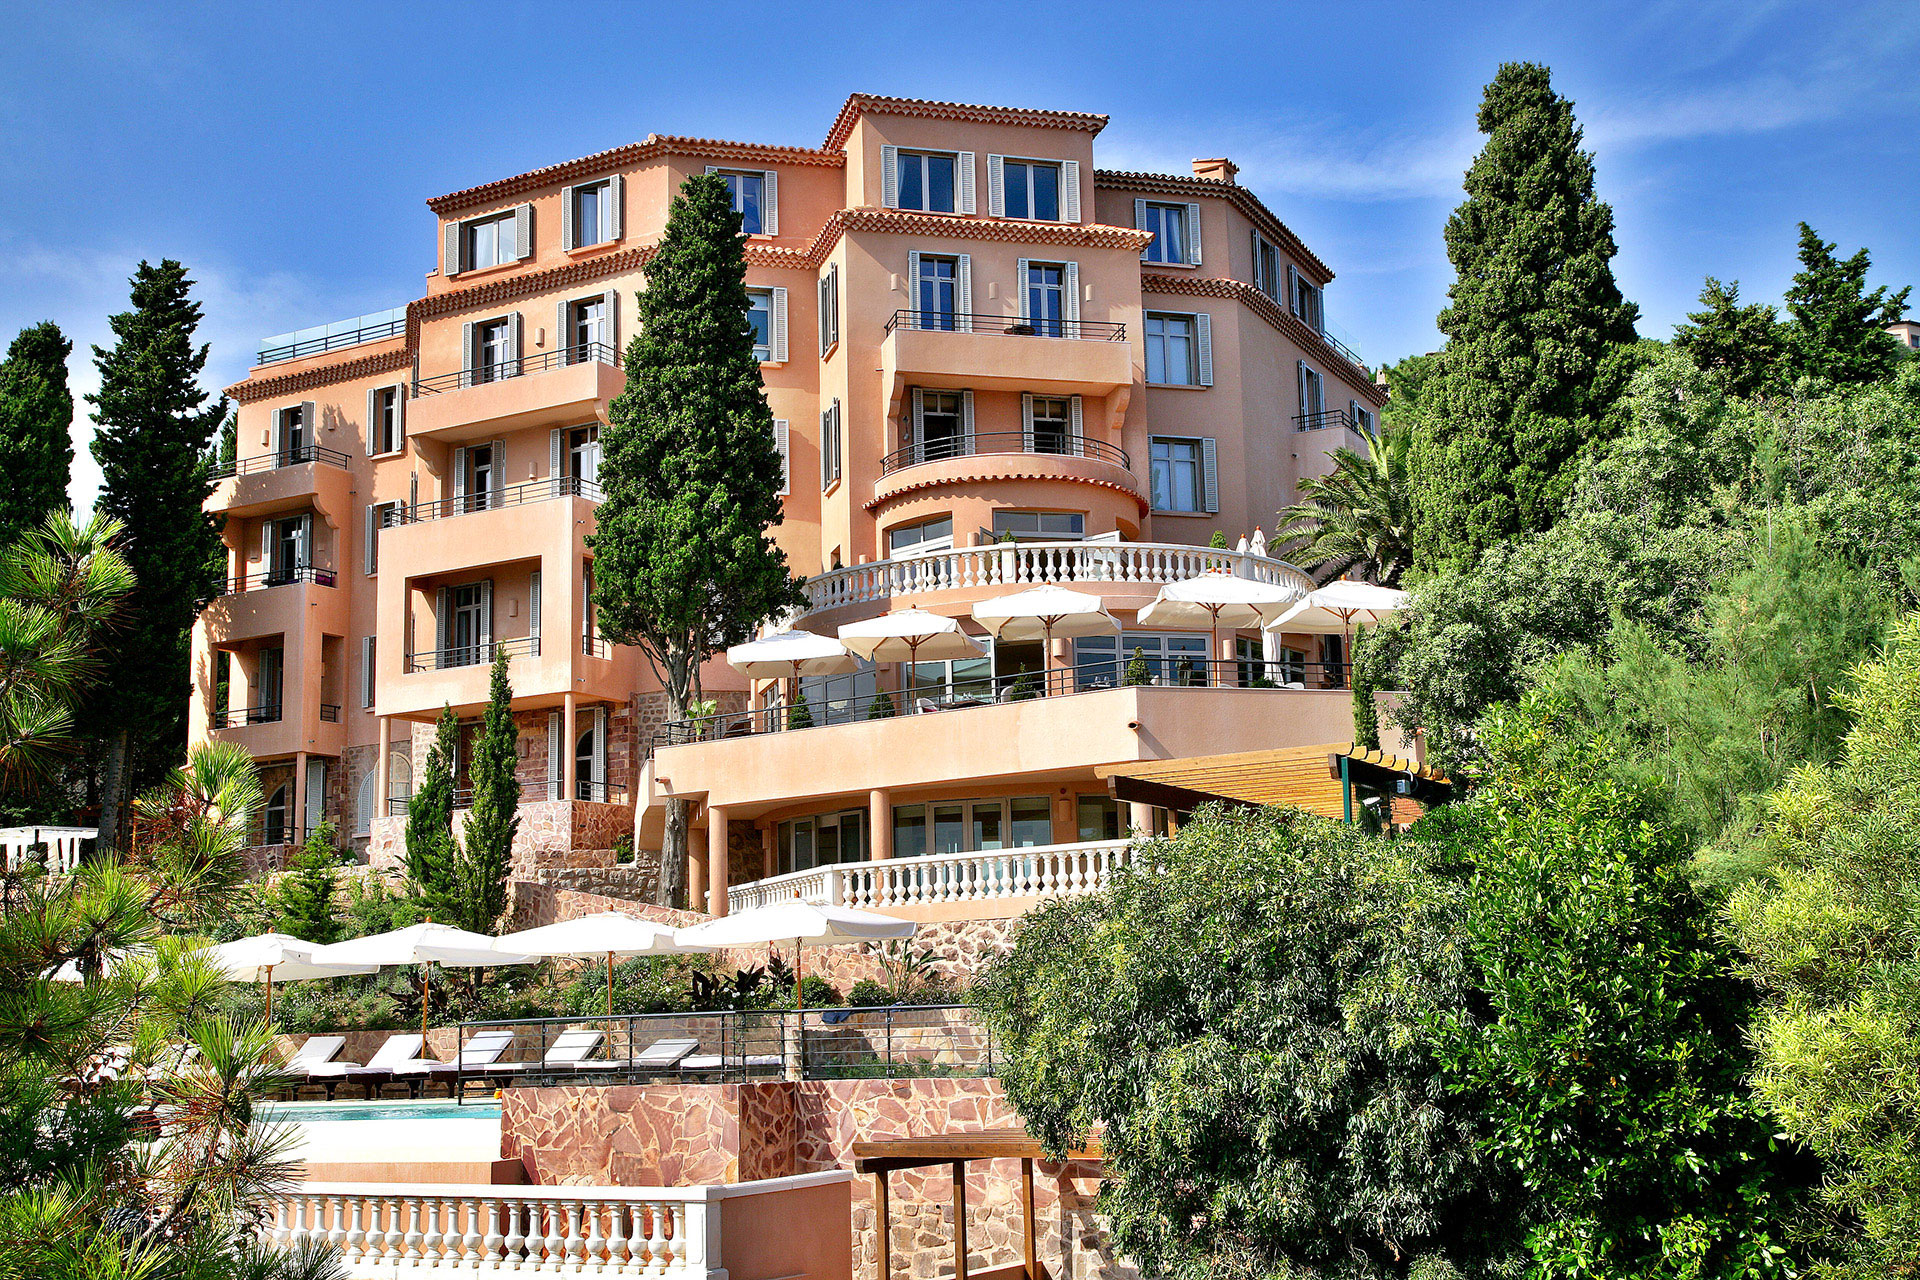 Tiara Yaktsa – Luxury hotel near Cannes